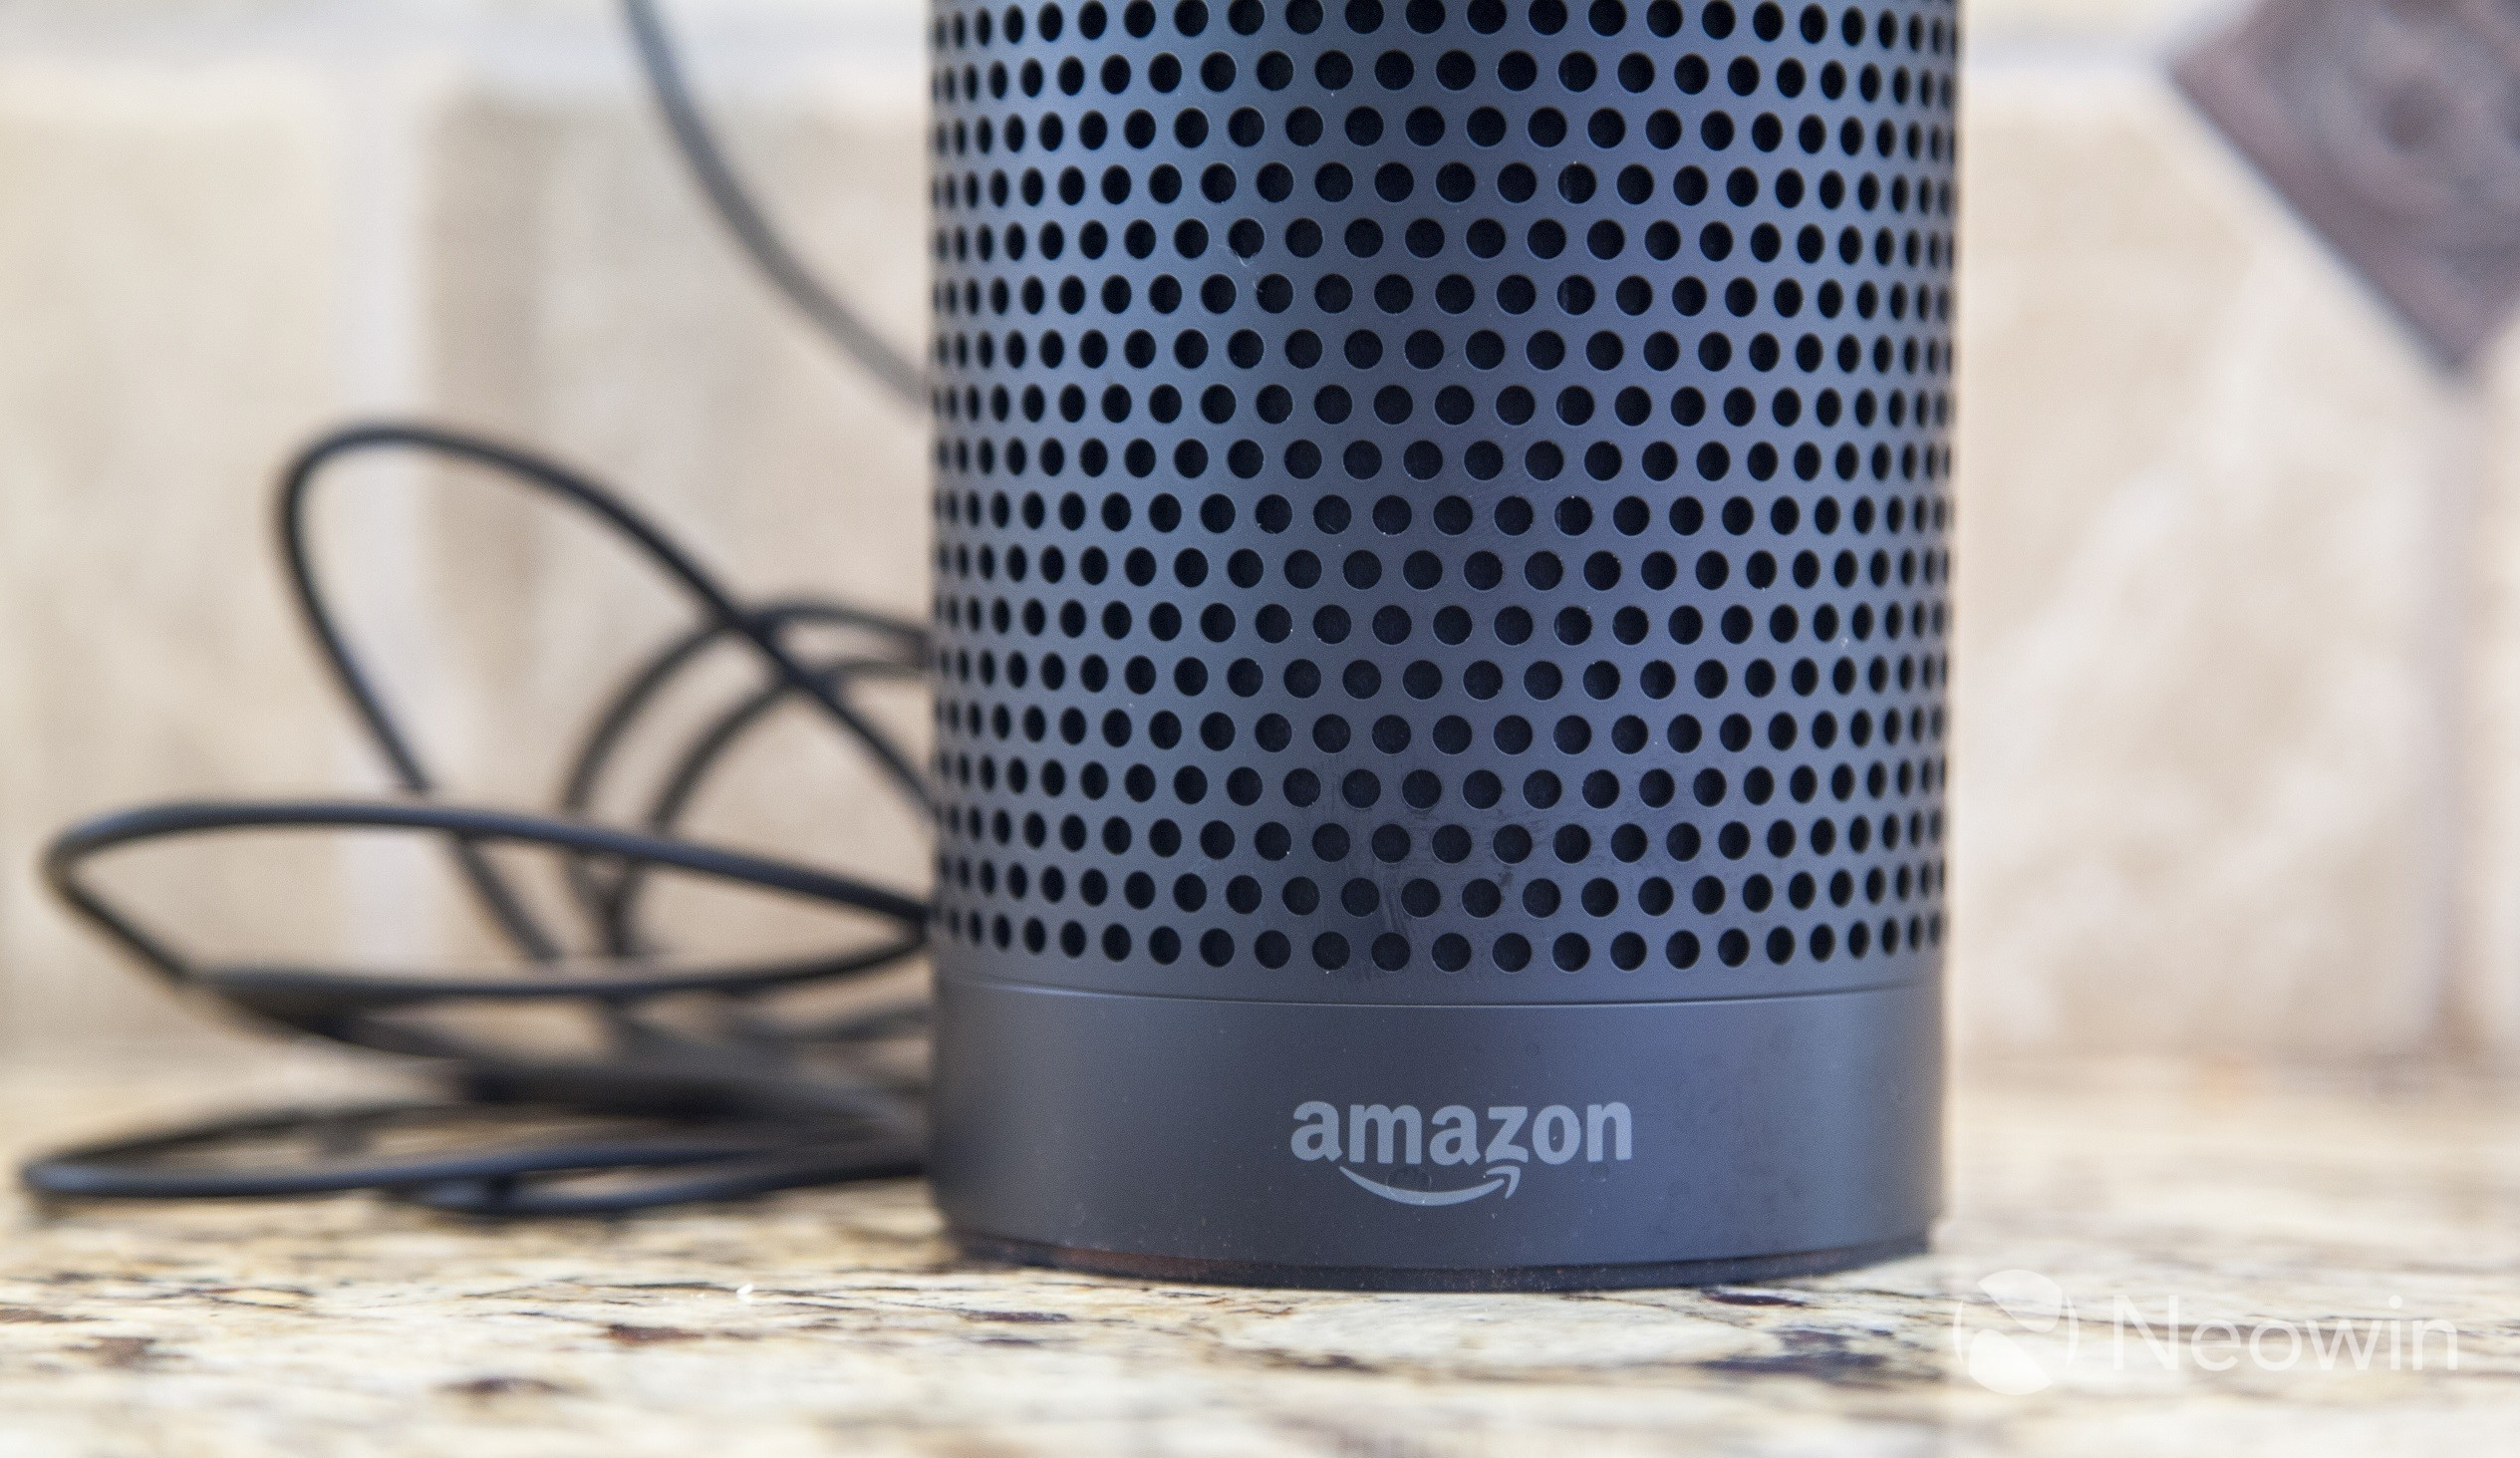 8 new Alexa devices planned including a microwave, report says